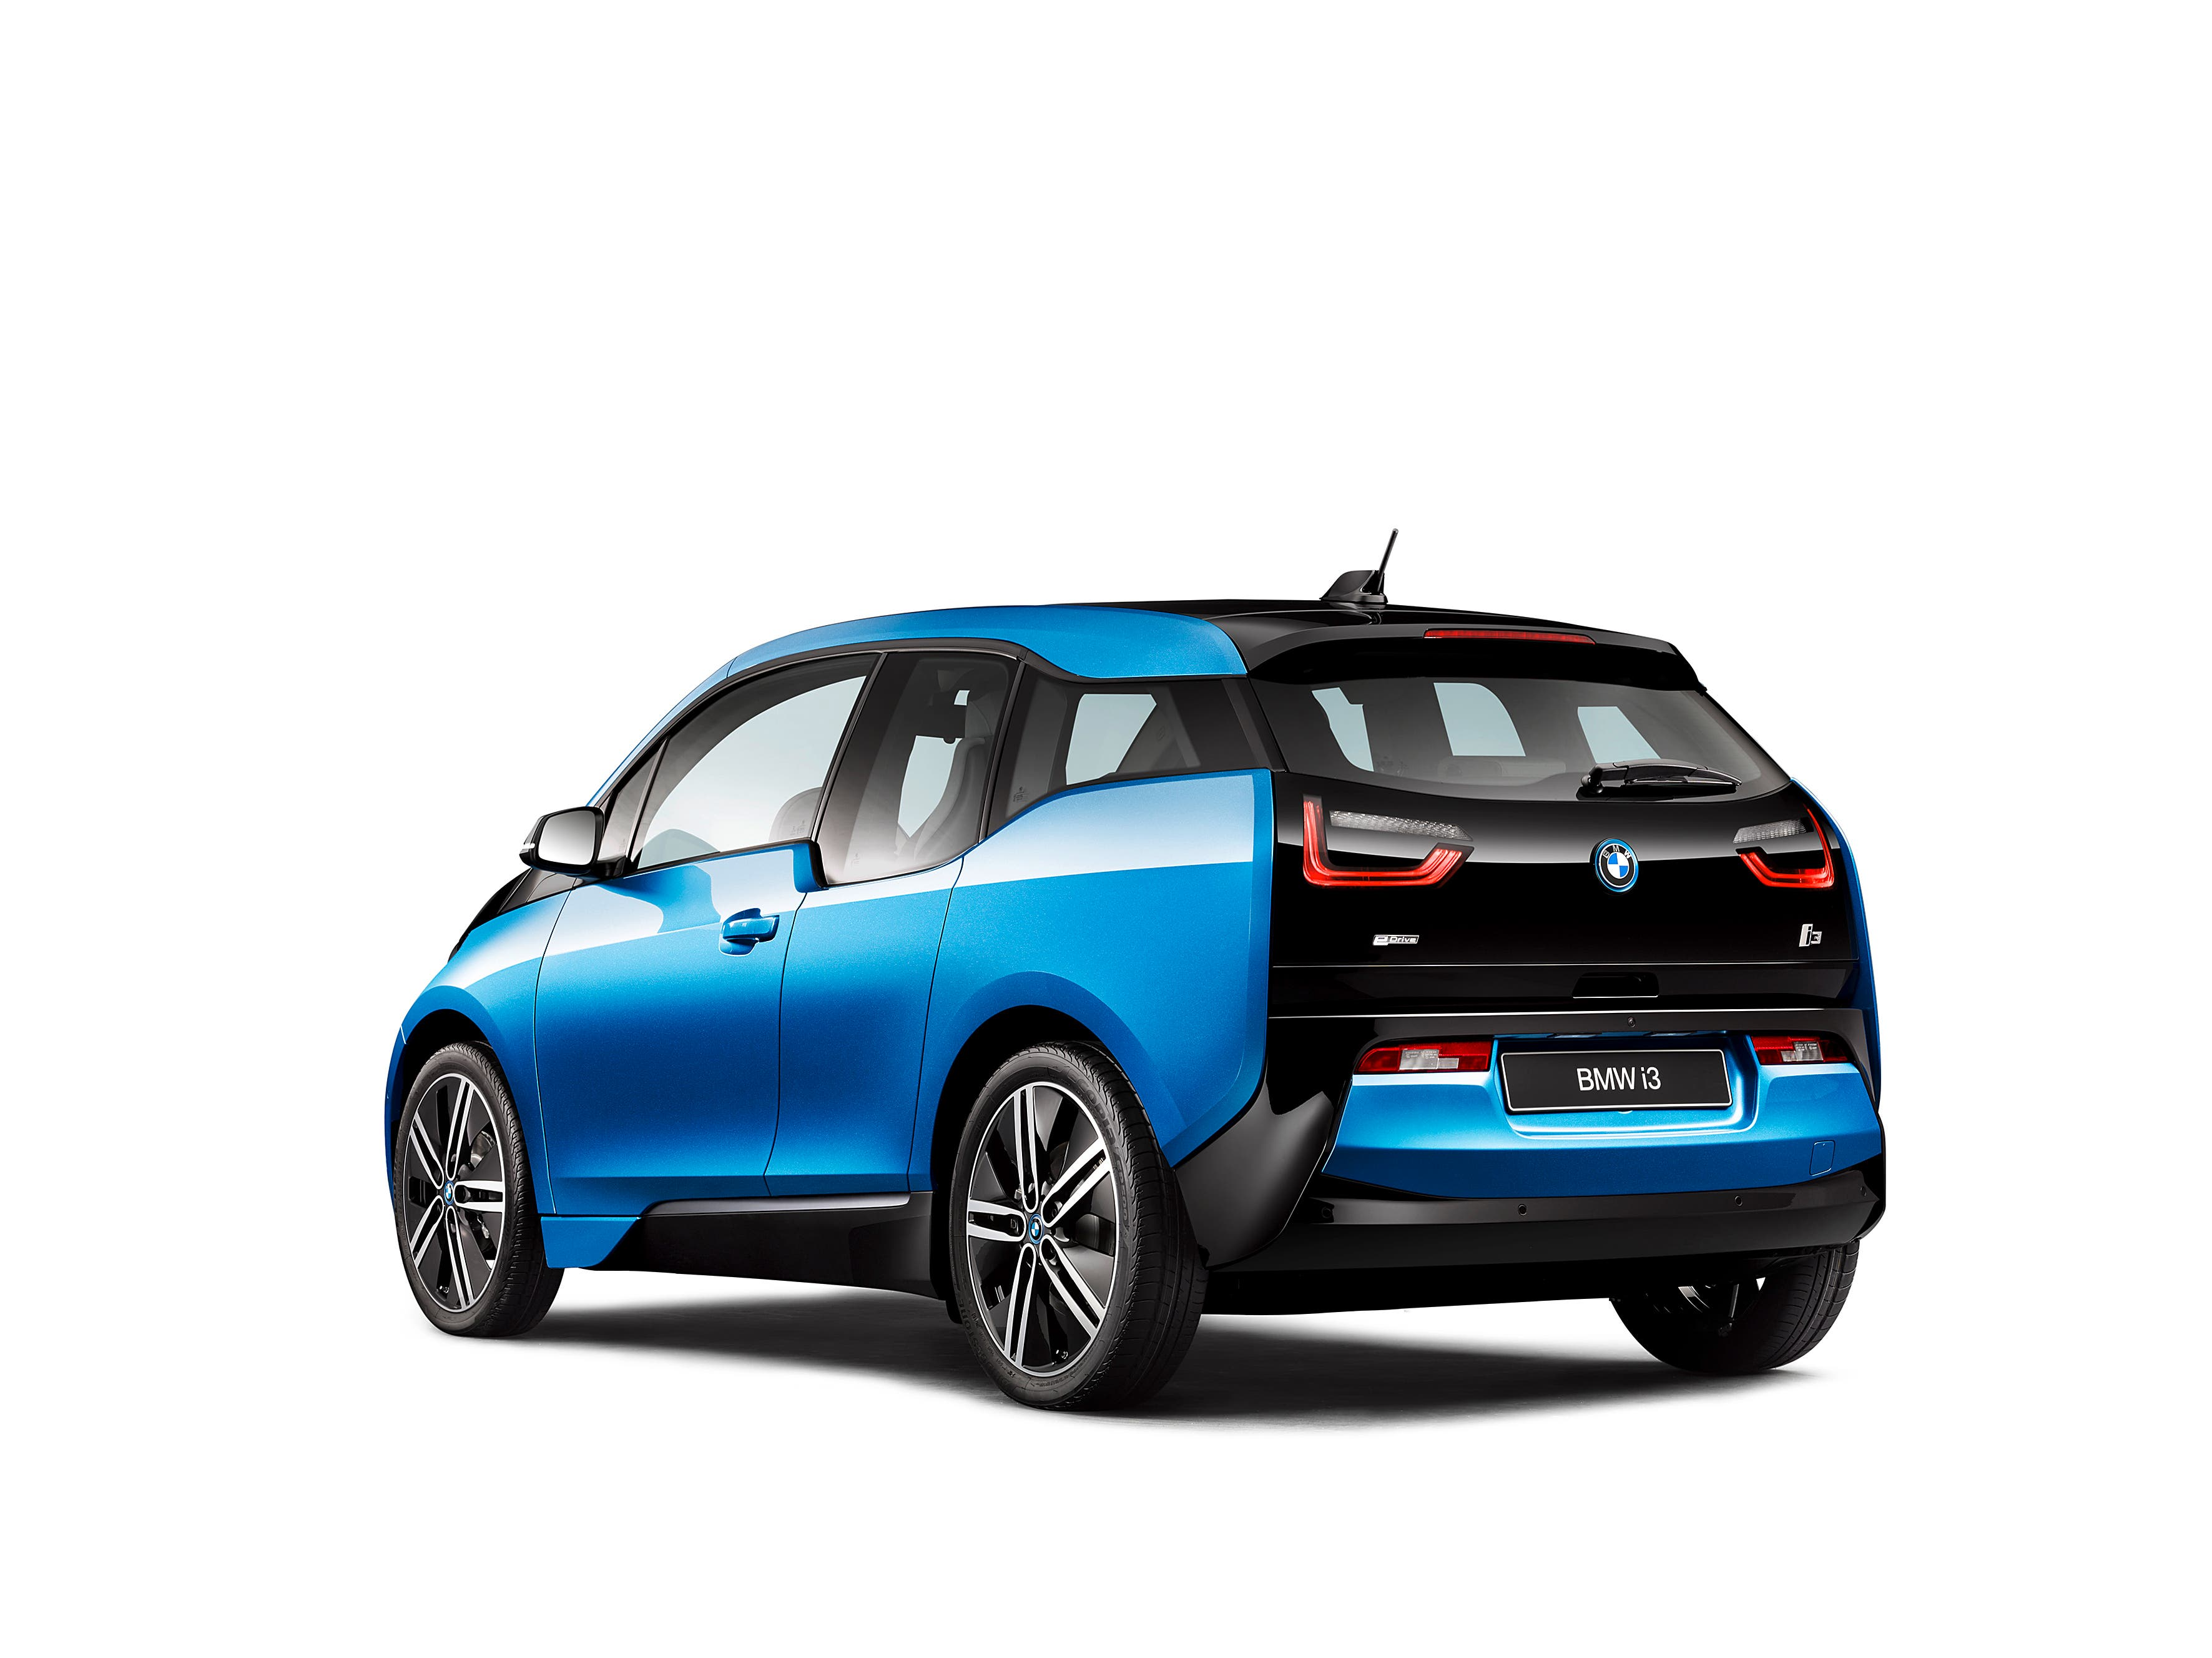 bmw i3 gets up to 114 miles of range in usa in depth cleantechnica. Black Bedroom Furniture Sets. Home Design Ideas